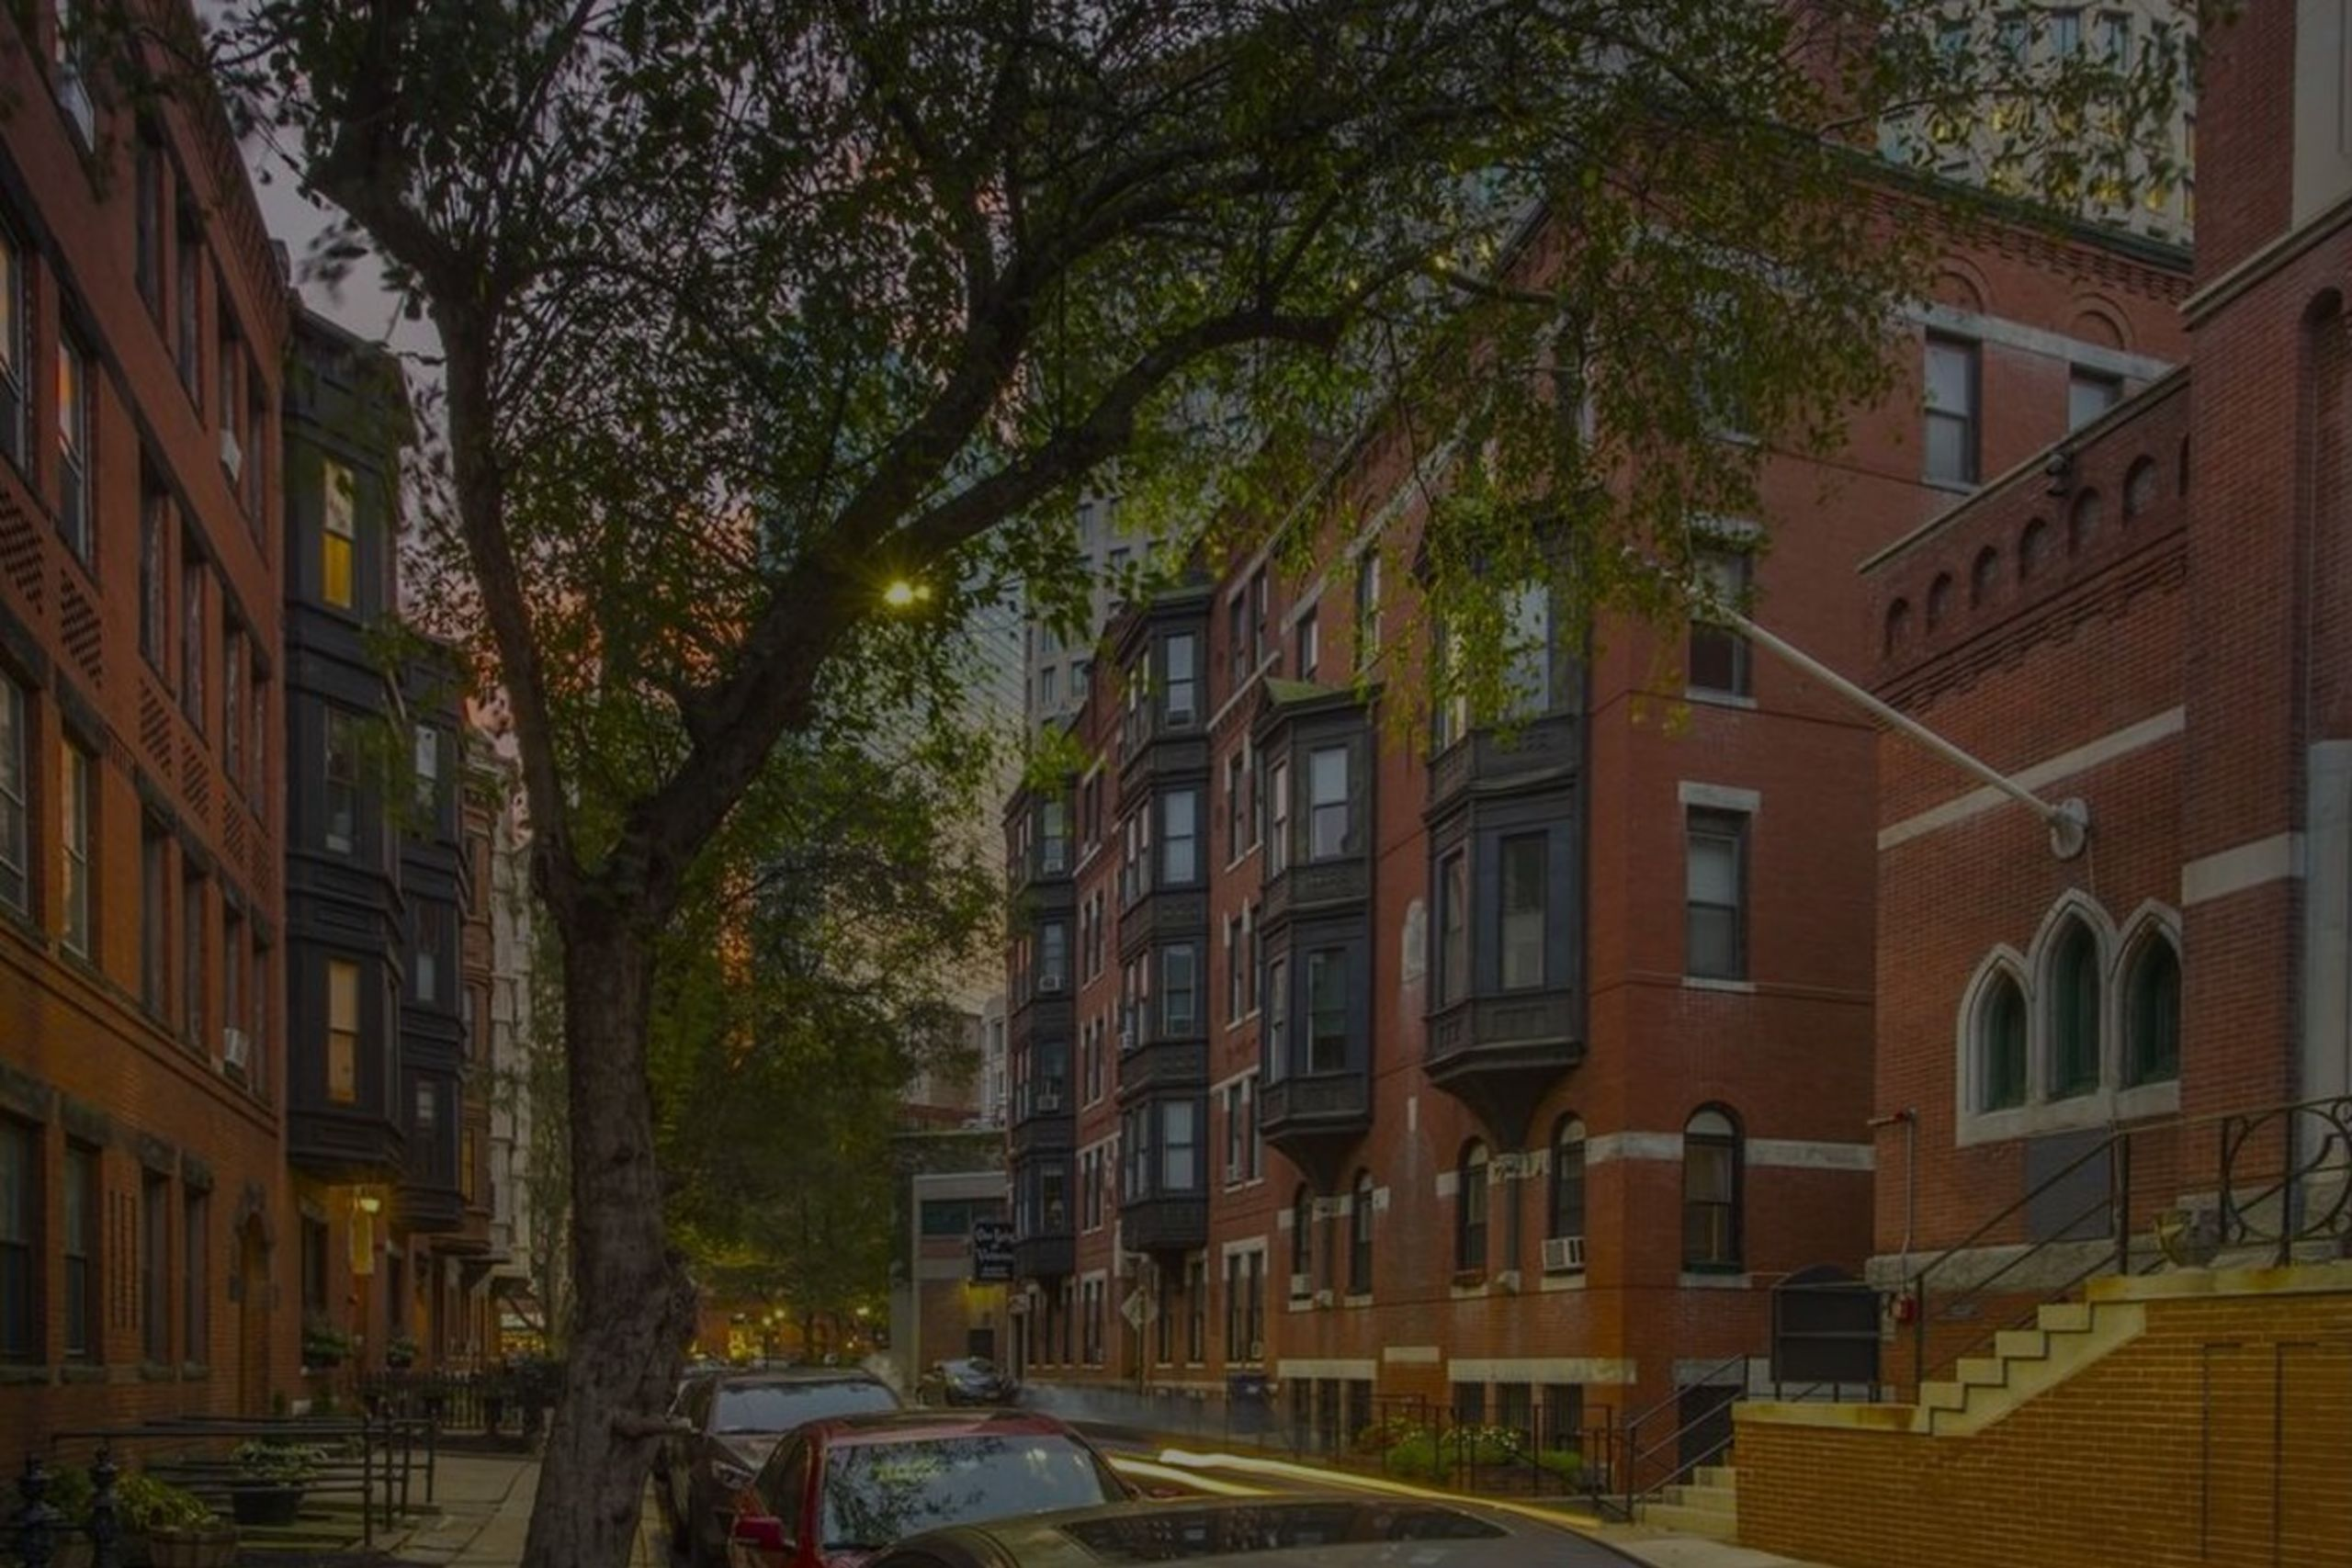 Boston Neighborhoods With The Steepest Price Increases